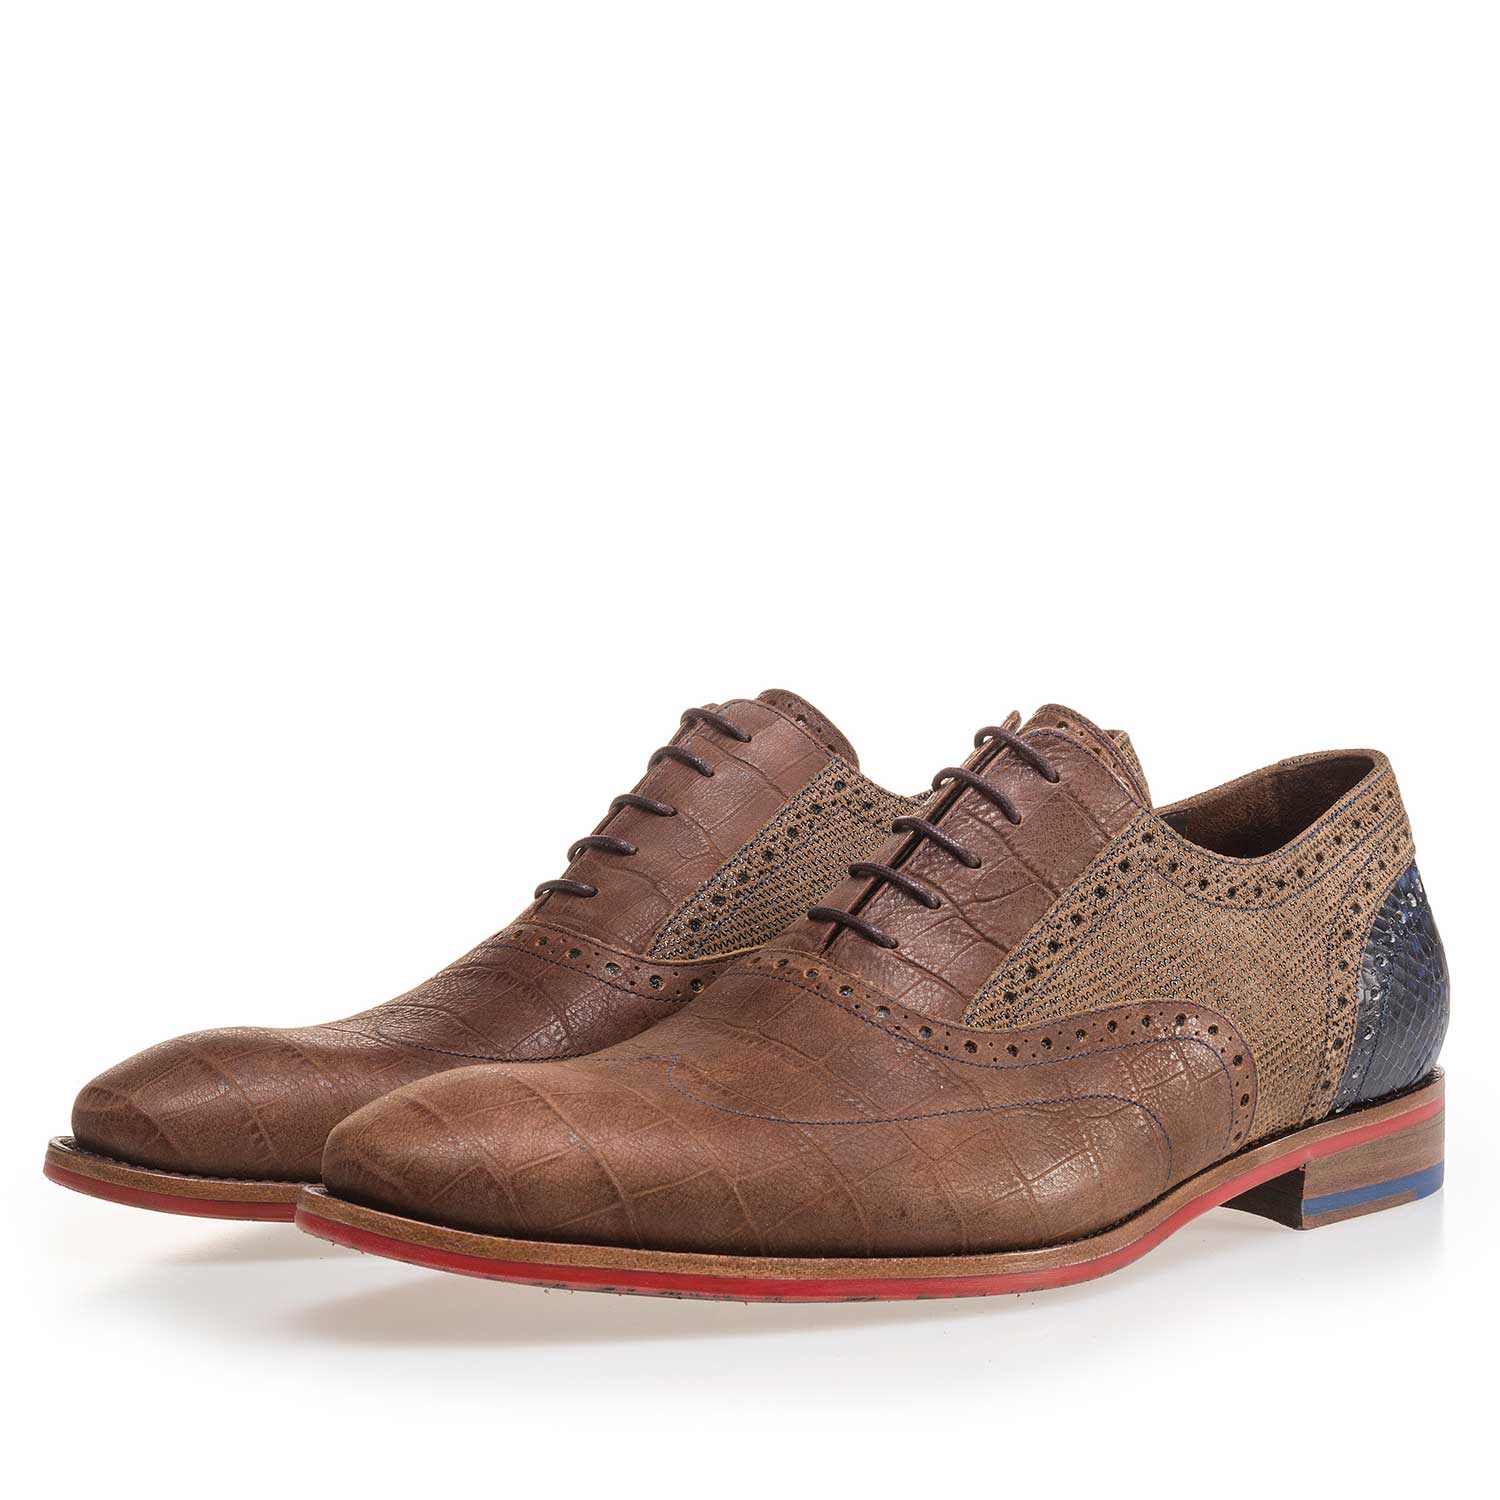 19104/06 - Cognac-coloured leather lace shoe with a croco print